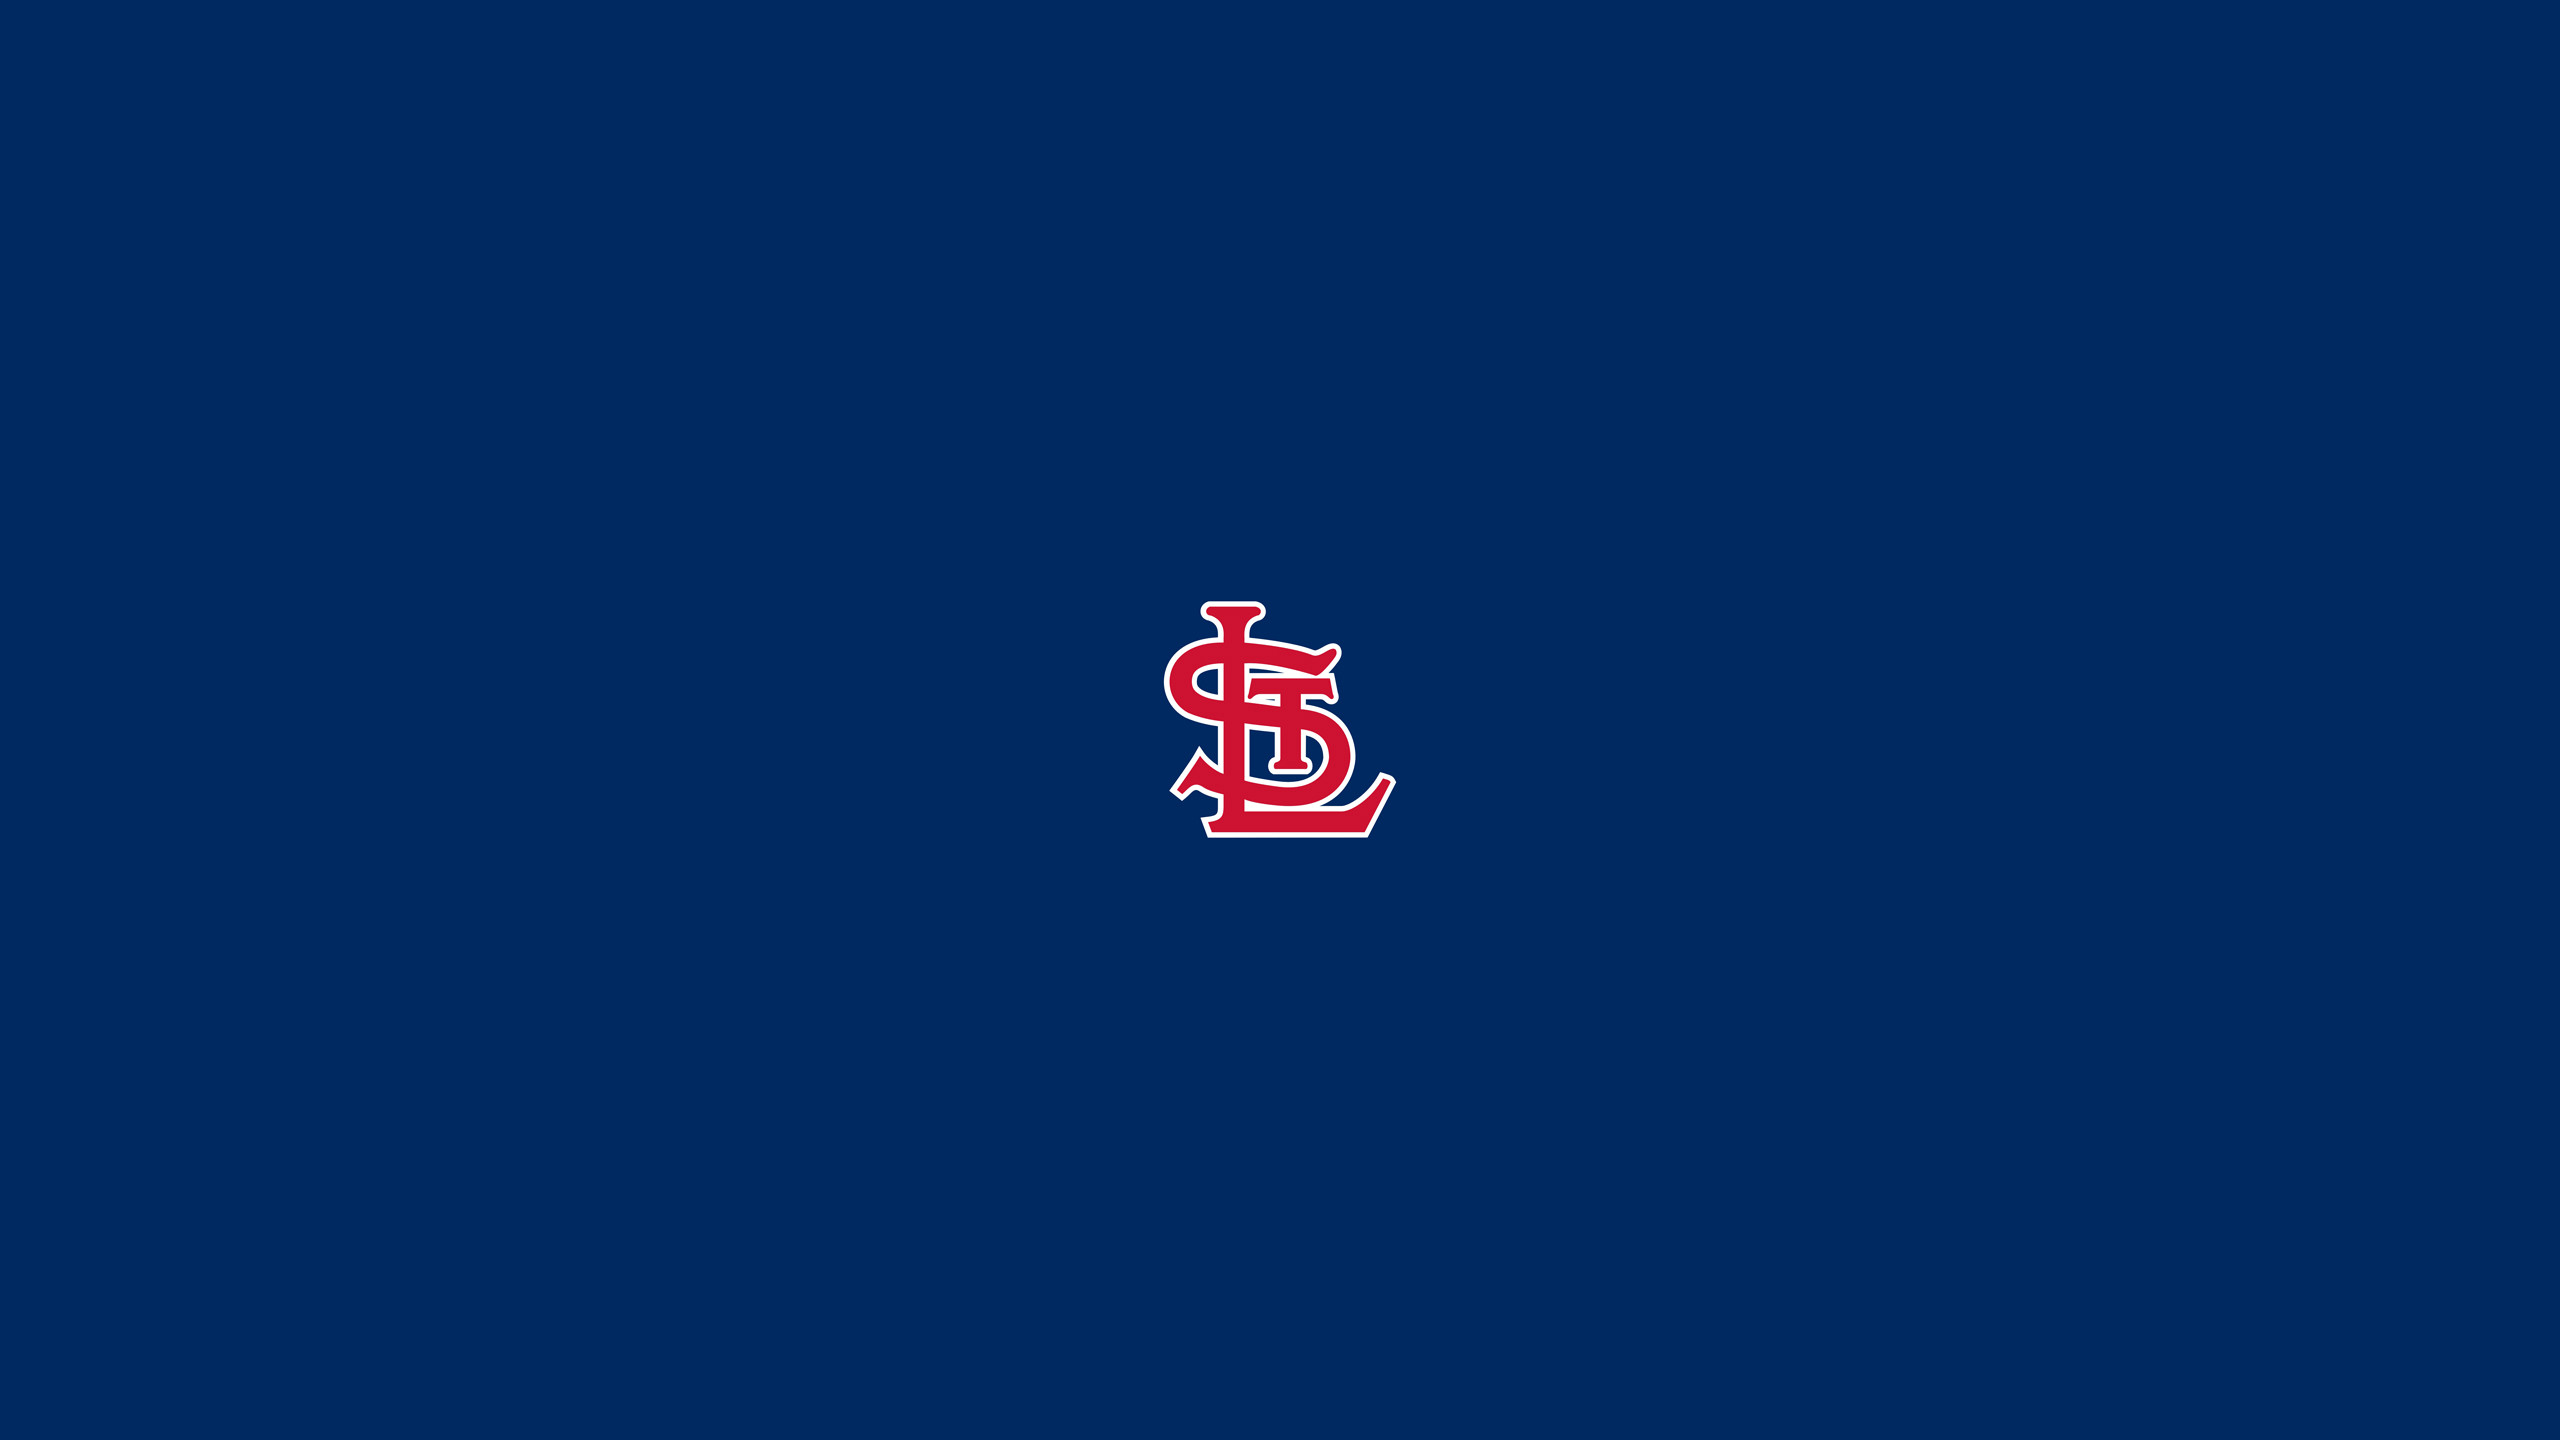 1920x1200 1920x1200 (widescreen). Download · 3000x2000 Cardinals Baseball Players · STL Cardinals Baseball Desktop Wallpaper .